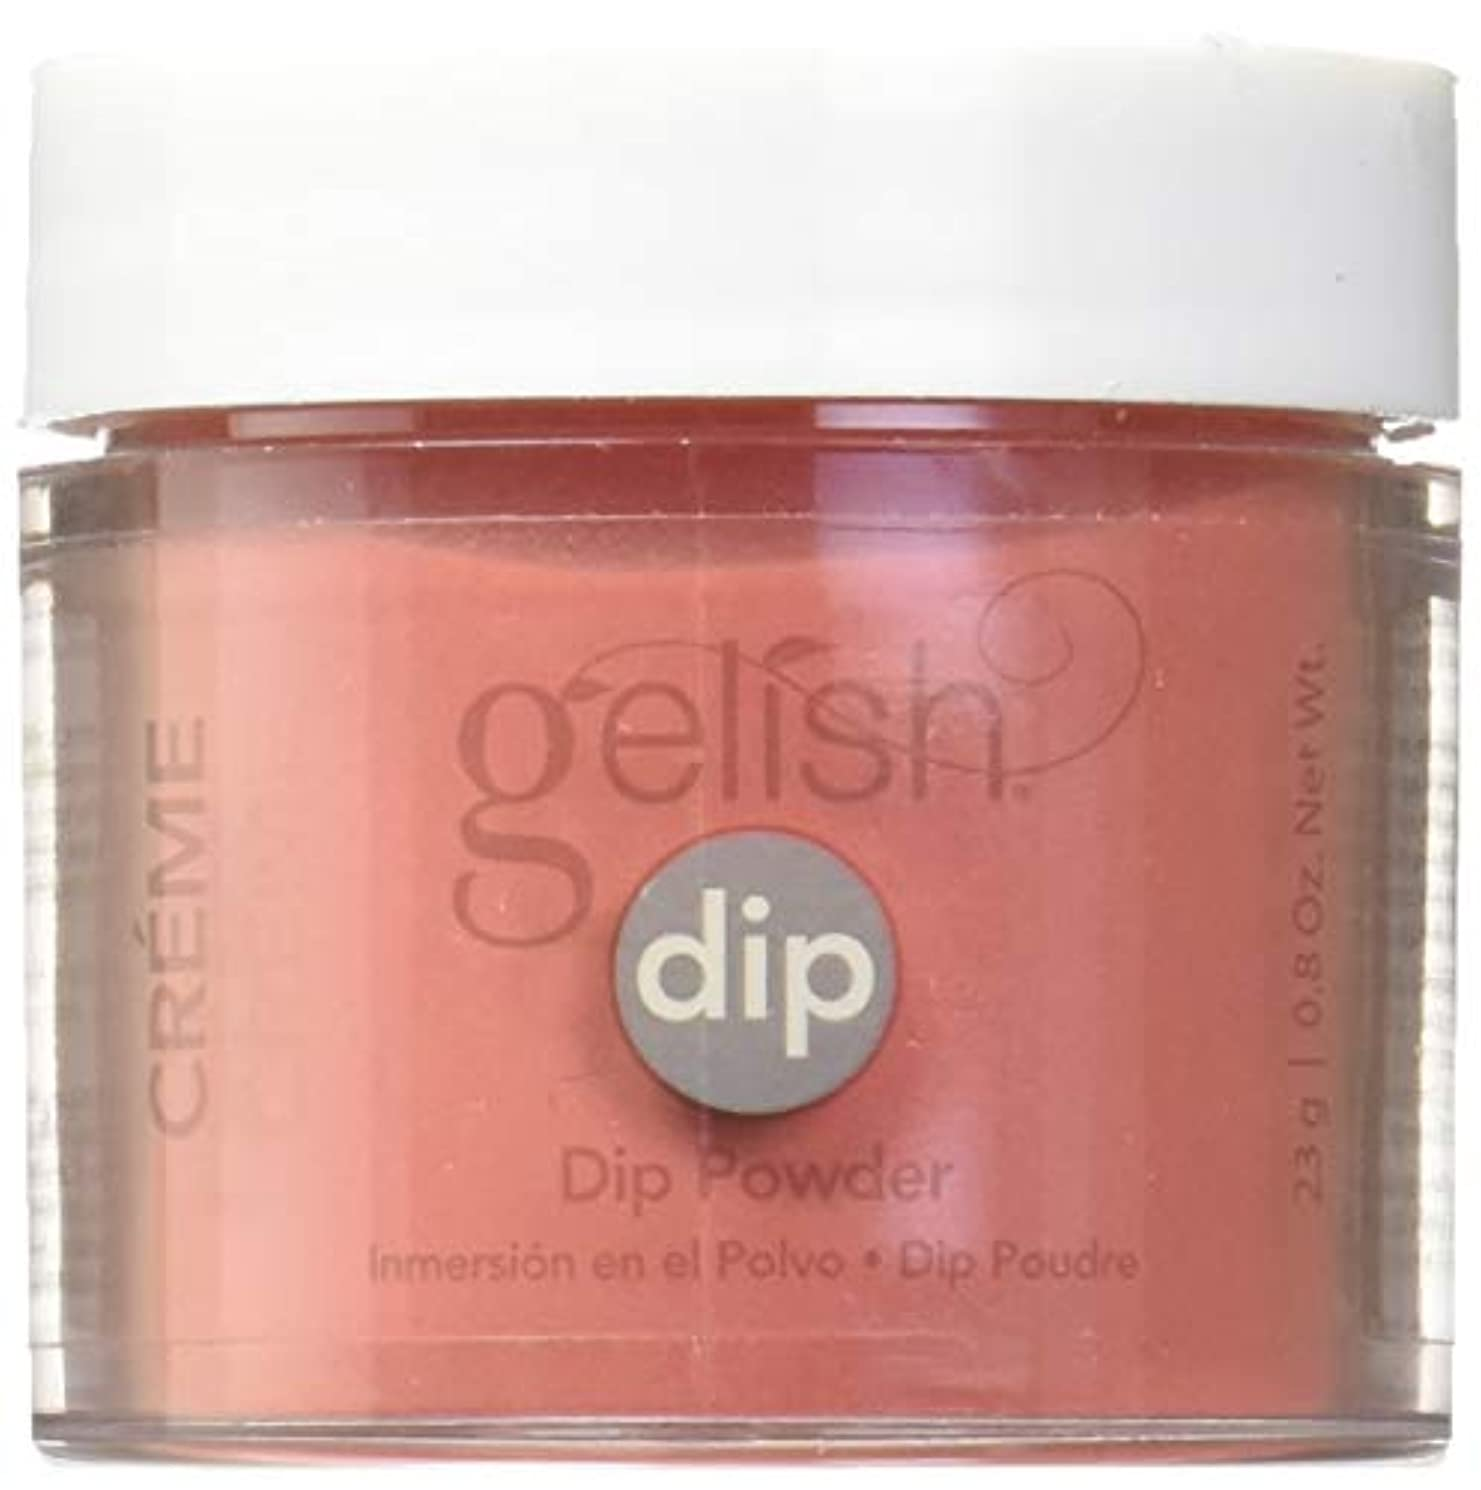 南目の前の野菜Harmony Gelish - Acrylic Dip Powder - Fire Cracker - 23g / 0.8oz